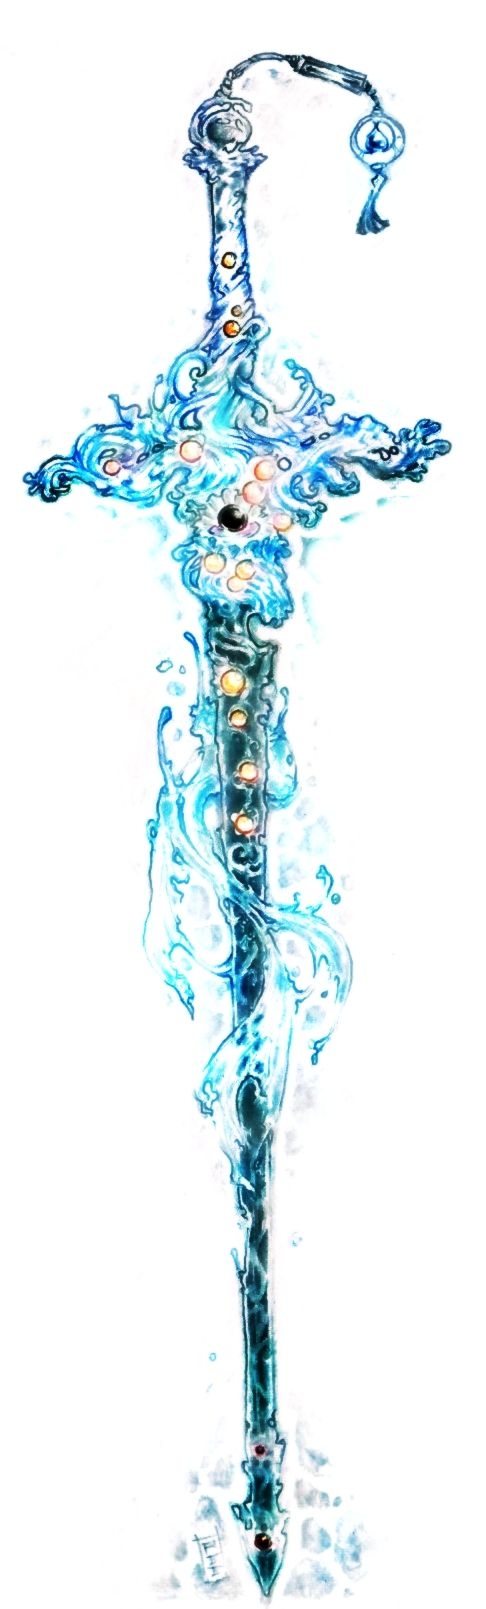 Blackened Oceanic Blade by Amdhuscias.deviantart.com on @DeviantArt